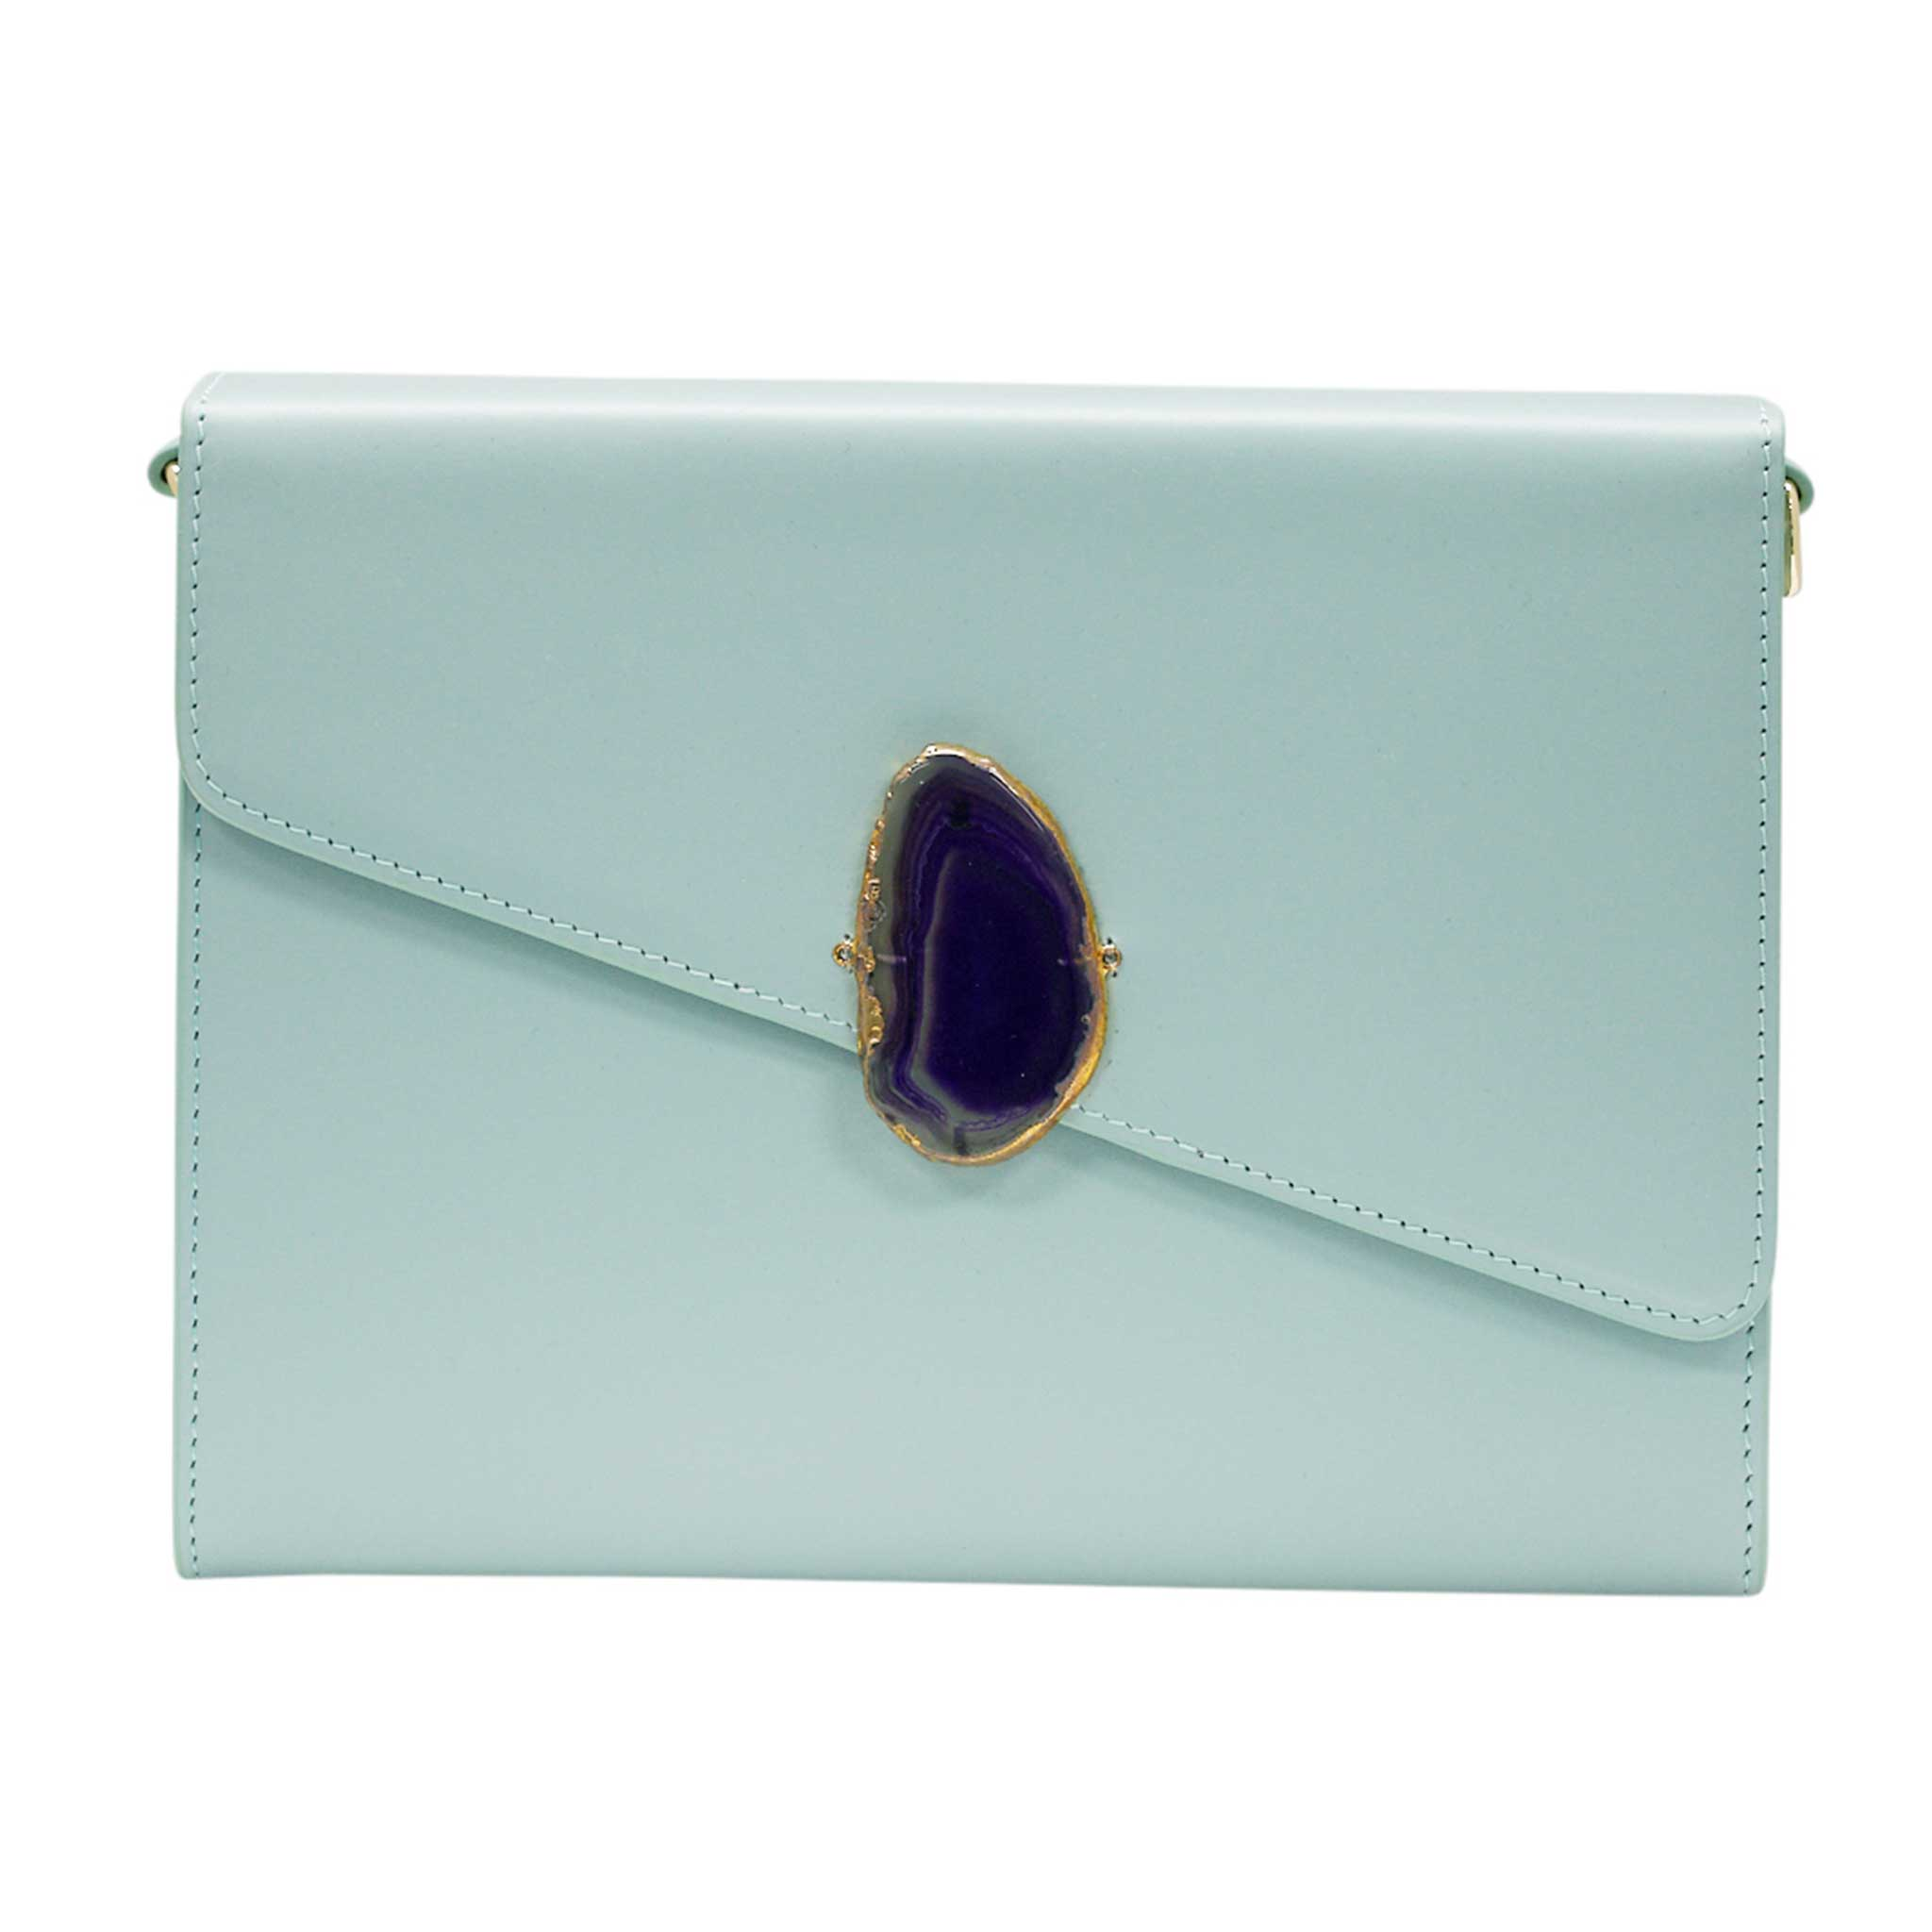 LOVED BAG - MOONSTONE WHITE LEATHER WITH BLUE AGATE - 1.02.002.033